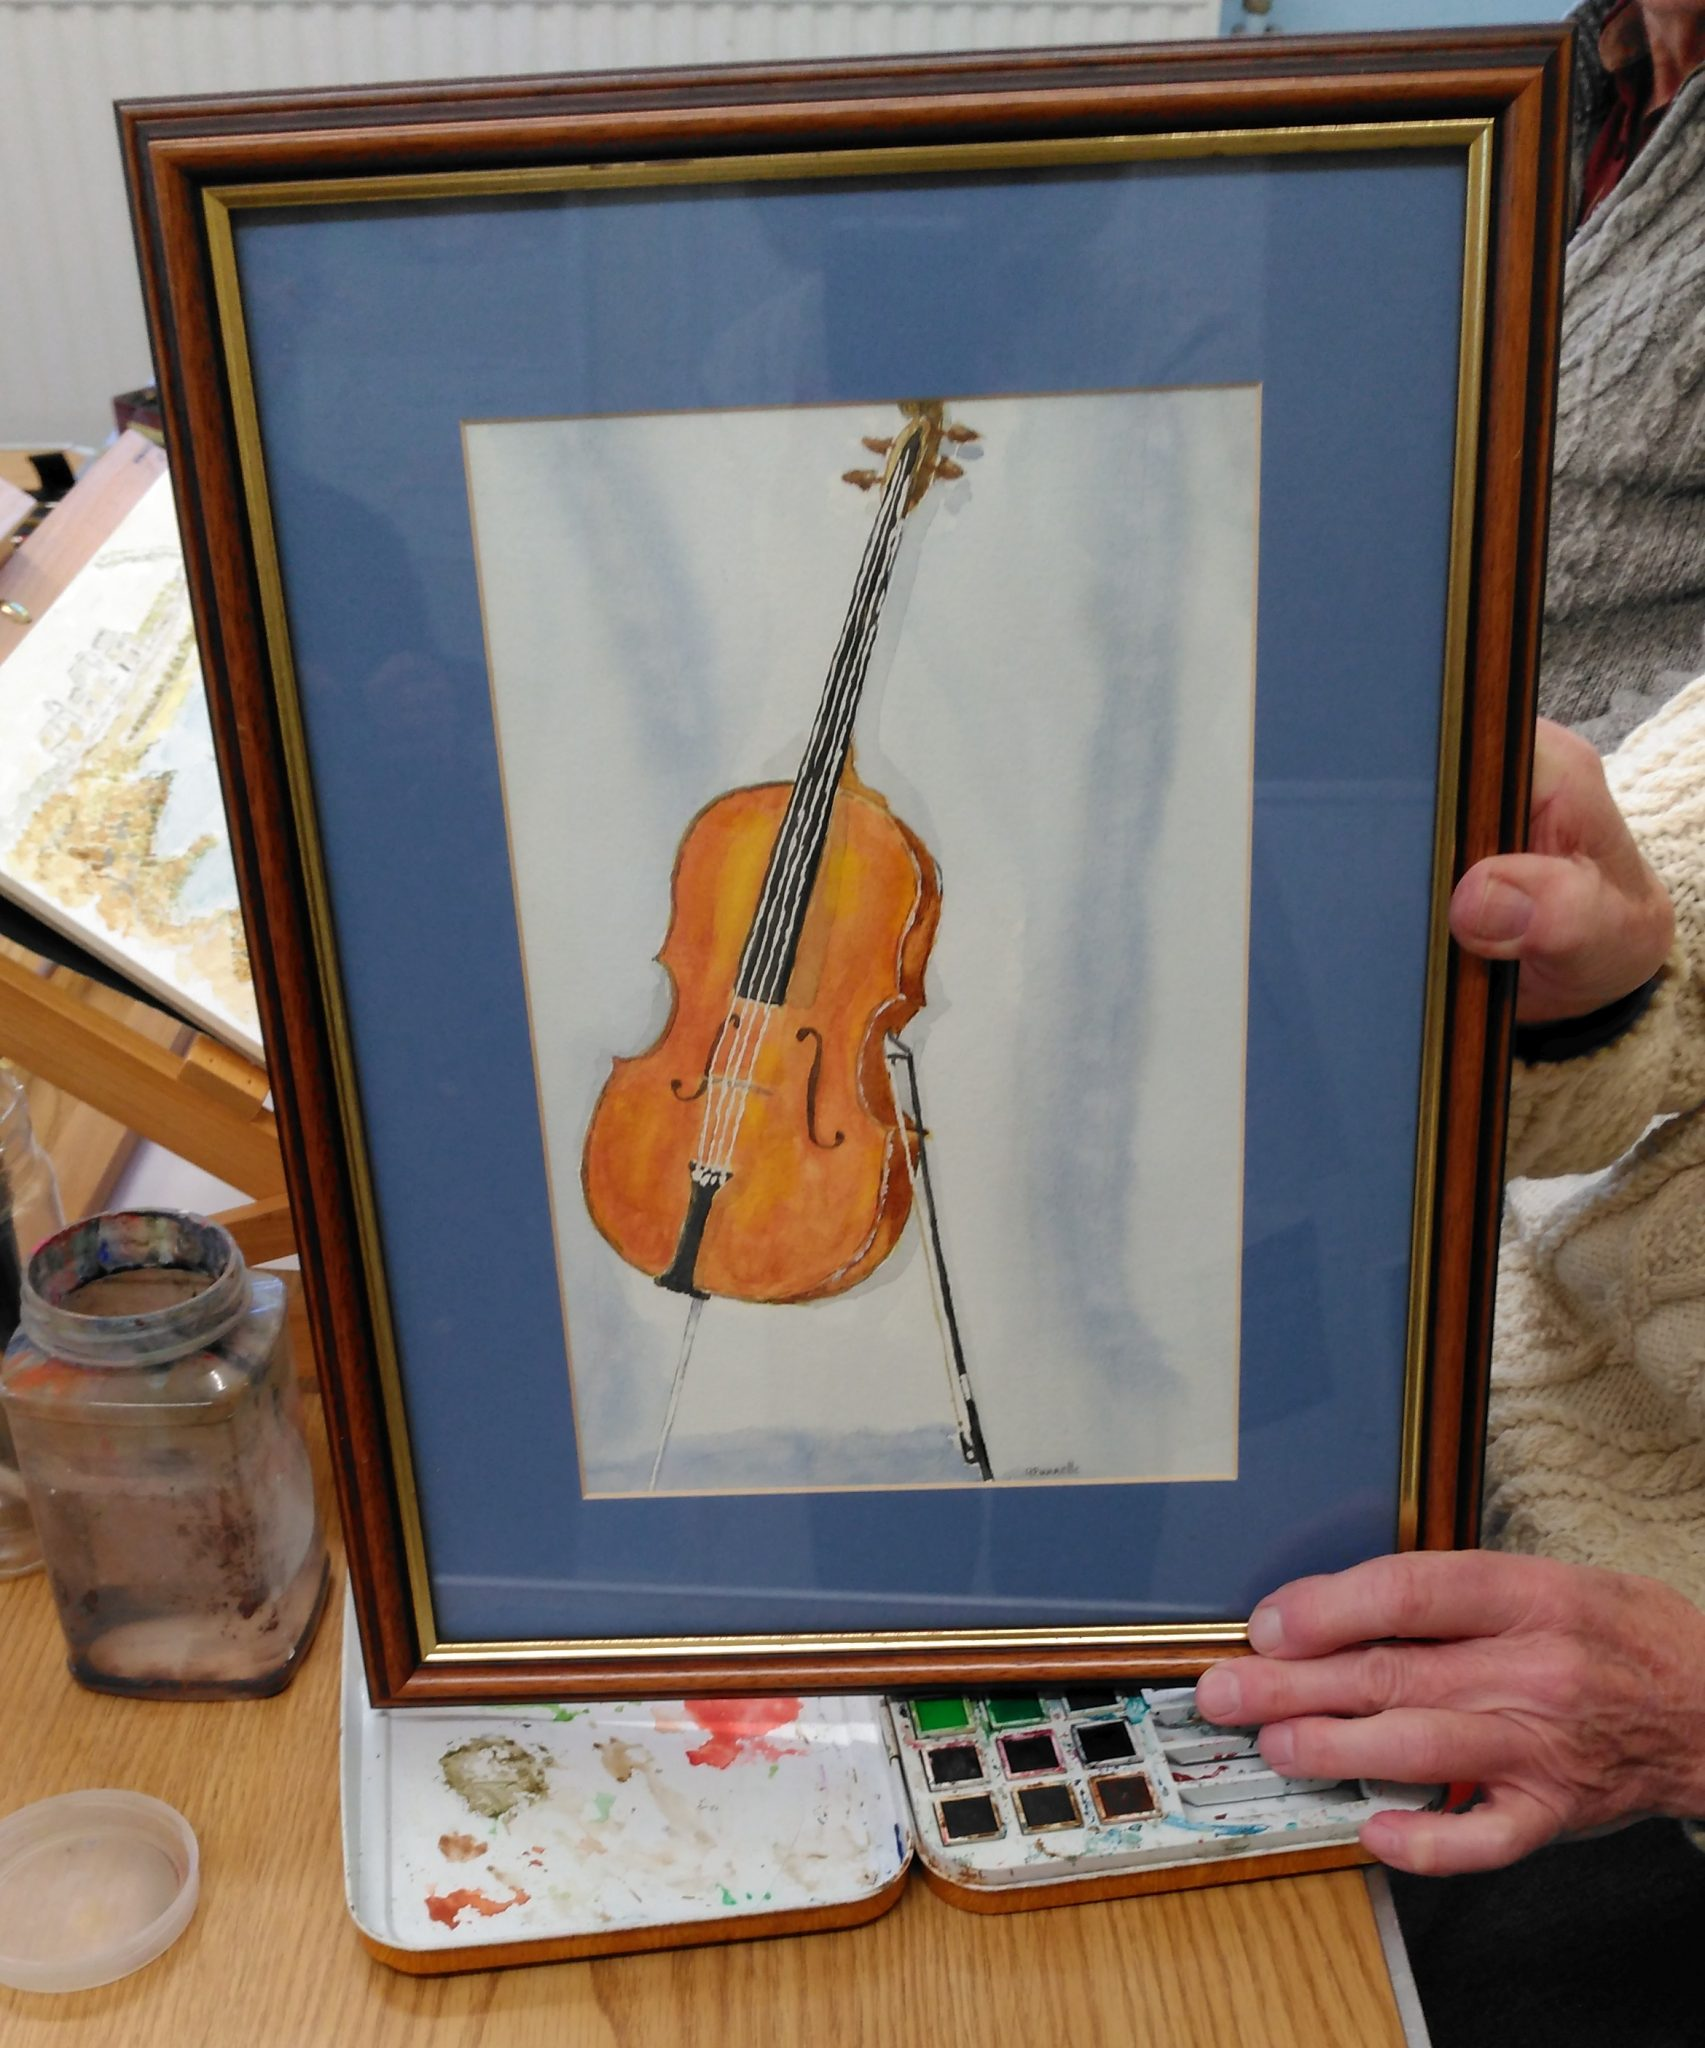 A framed watercolour paining of a cello being held by the artist.